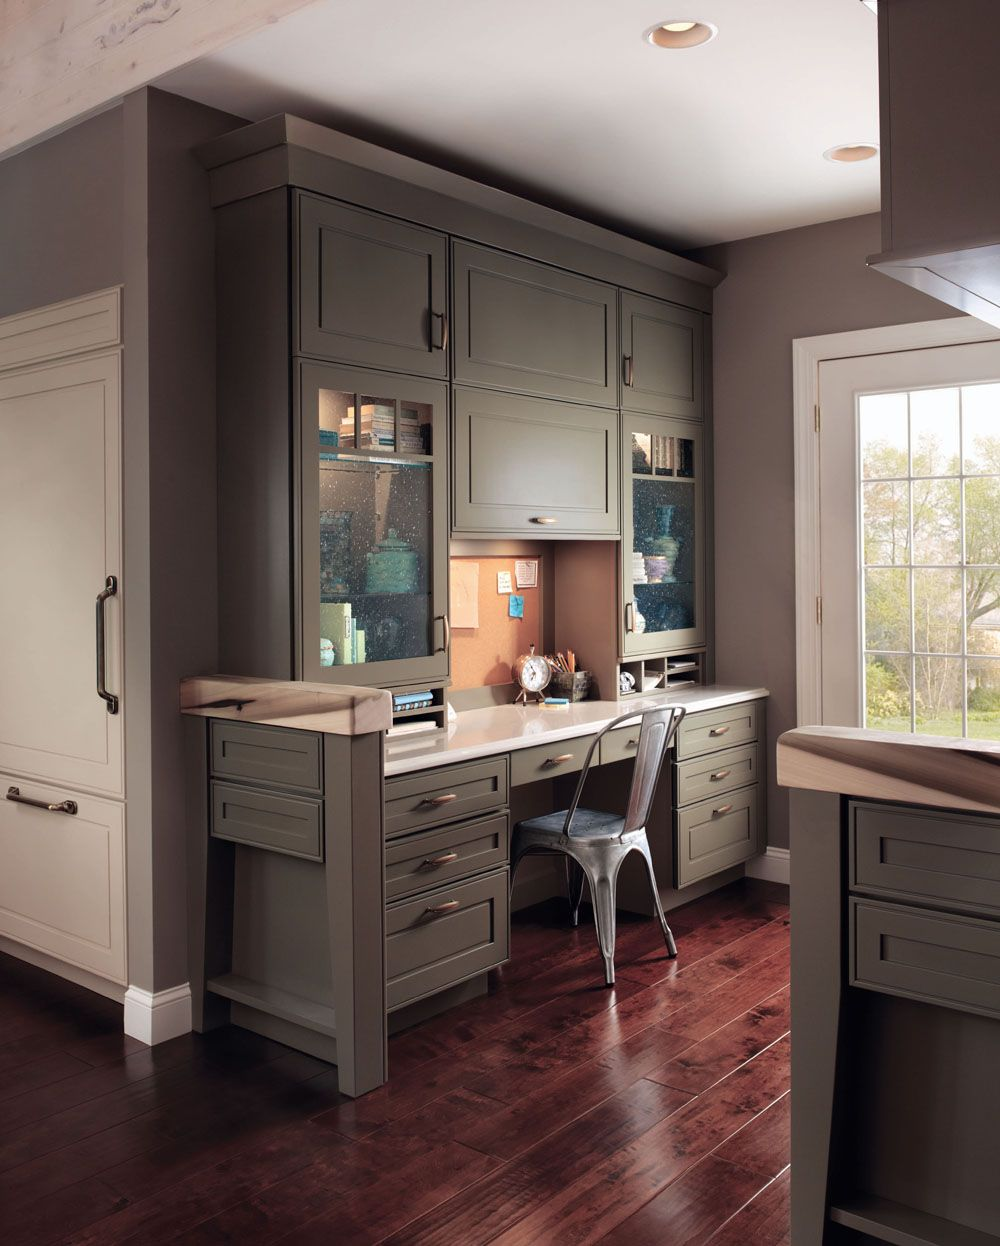 Photo Gallery - KraftMaid Cabinetry